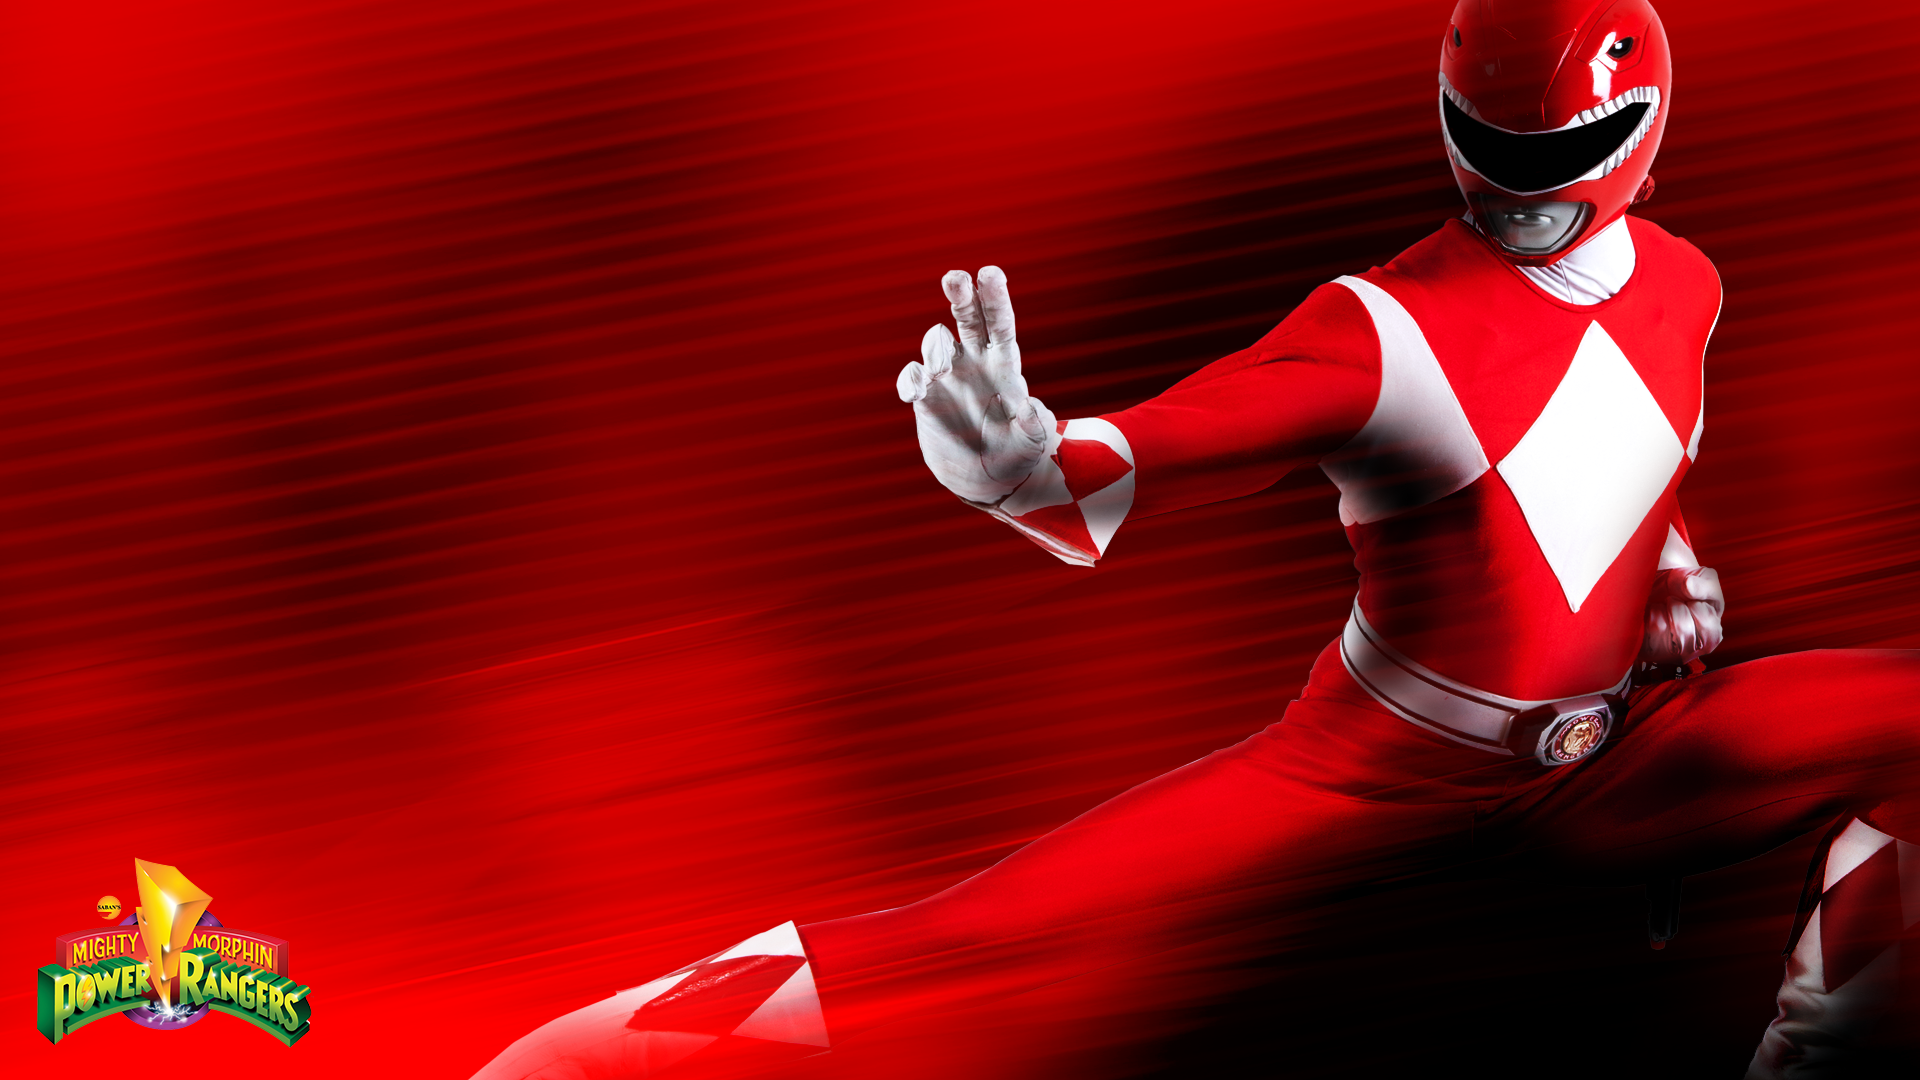 red ranger wallpaper -#main